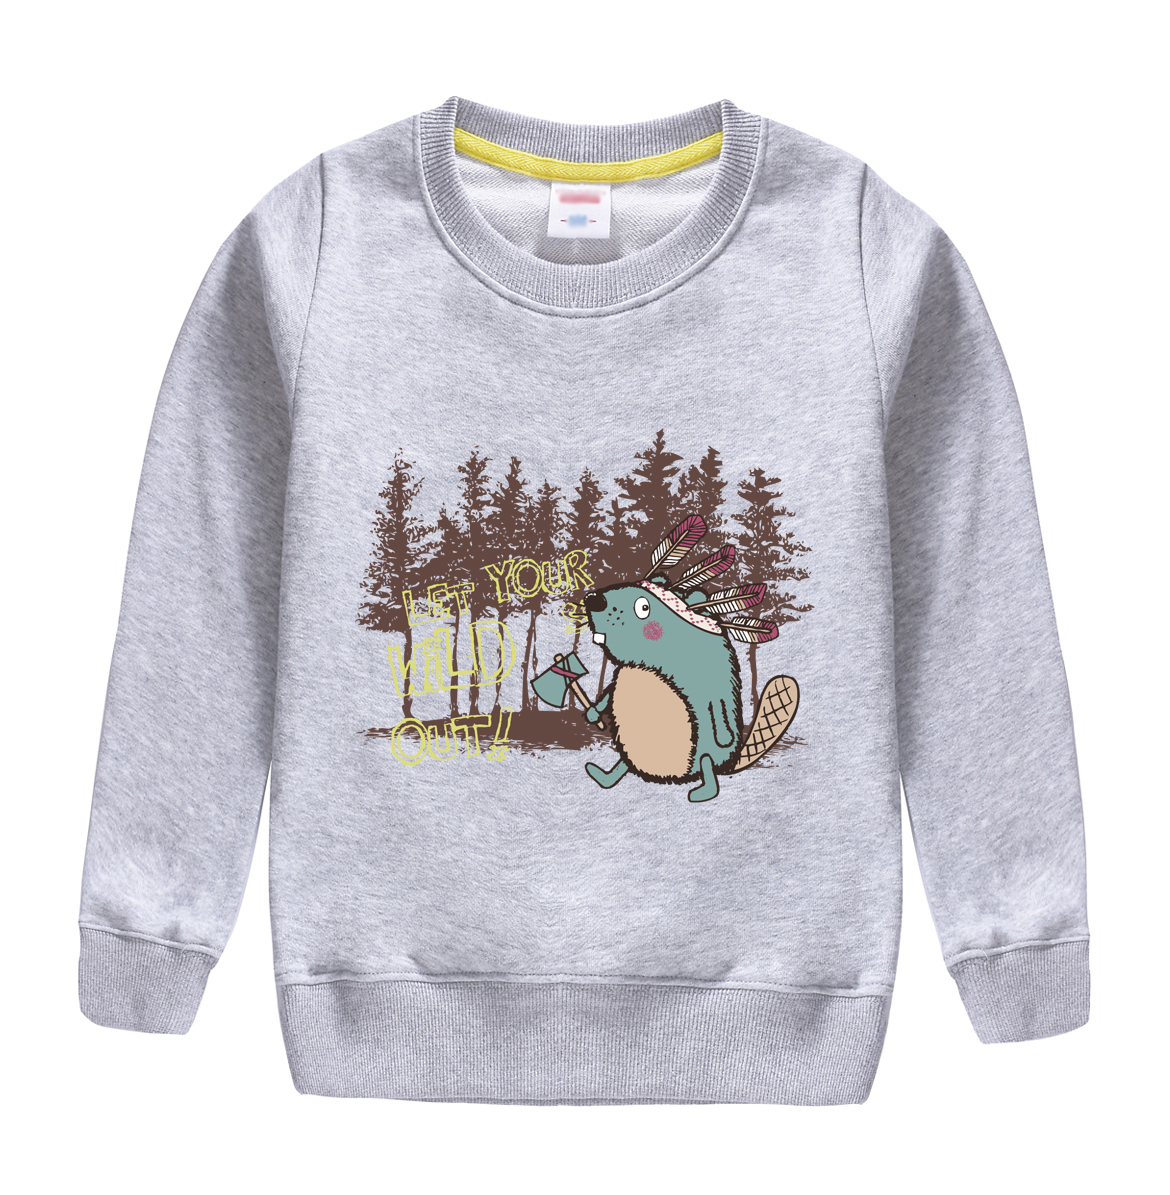 hot sale 2018 new fashion style of winter autum sweatshirt design for 4-13 t chilld hooded childrens clothing